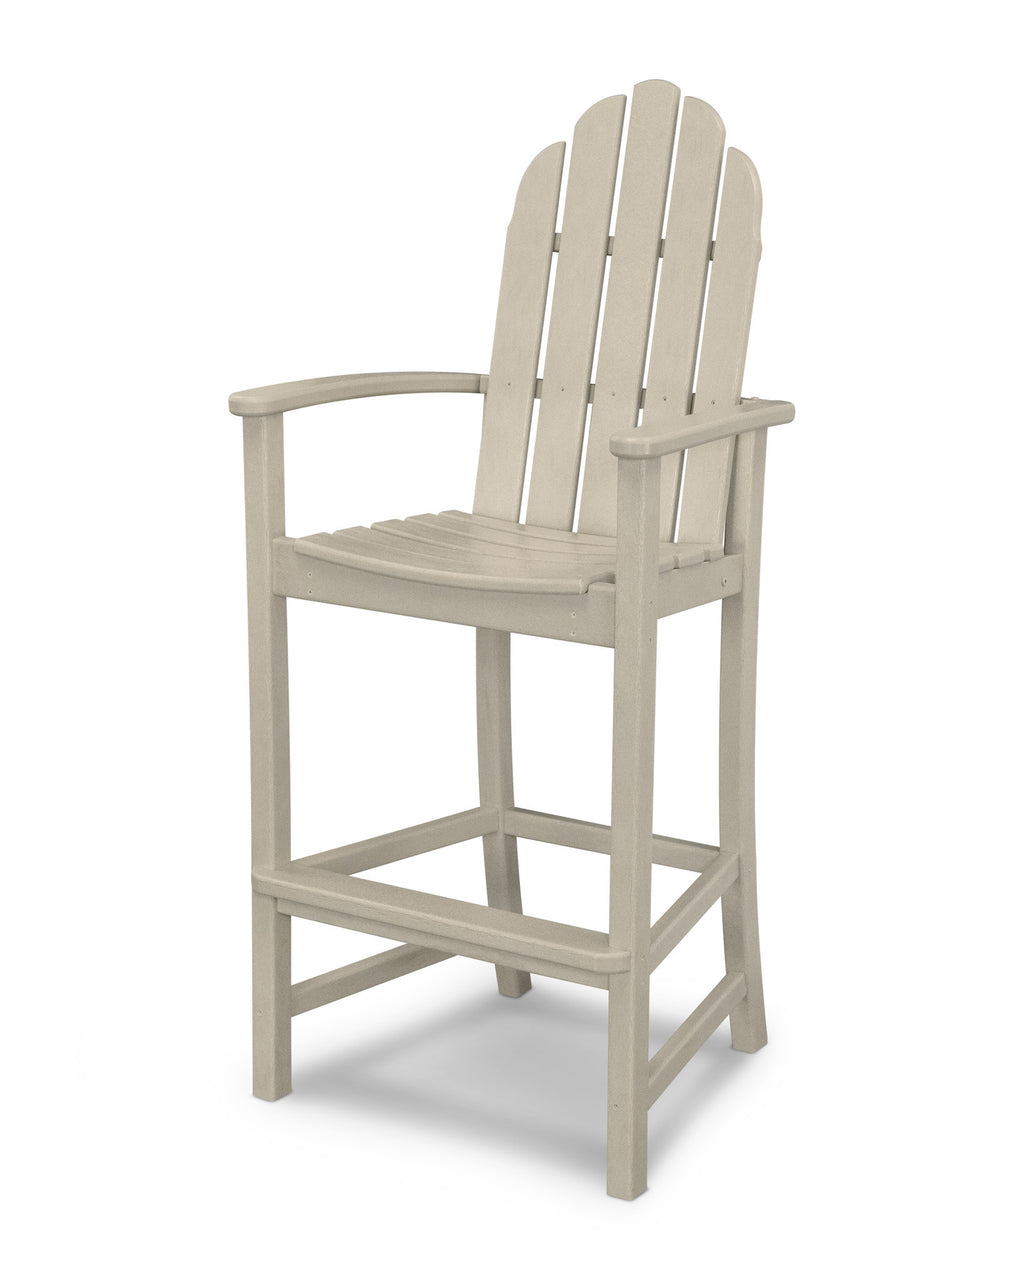 ADD202SA Classic Adirondack Bar Chair in Sand